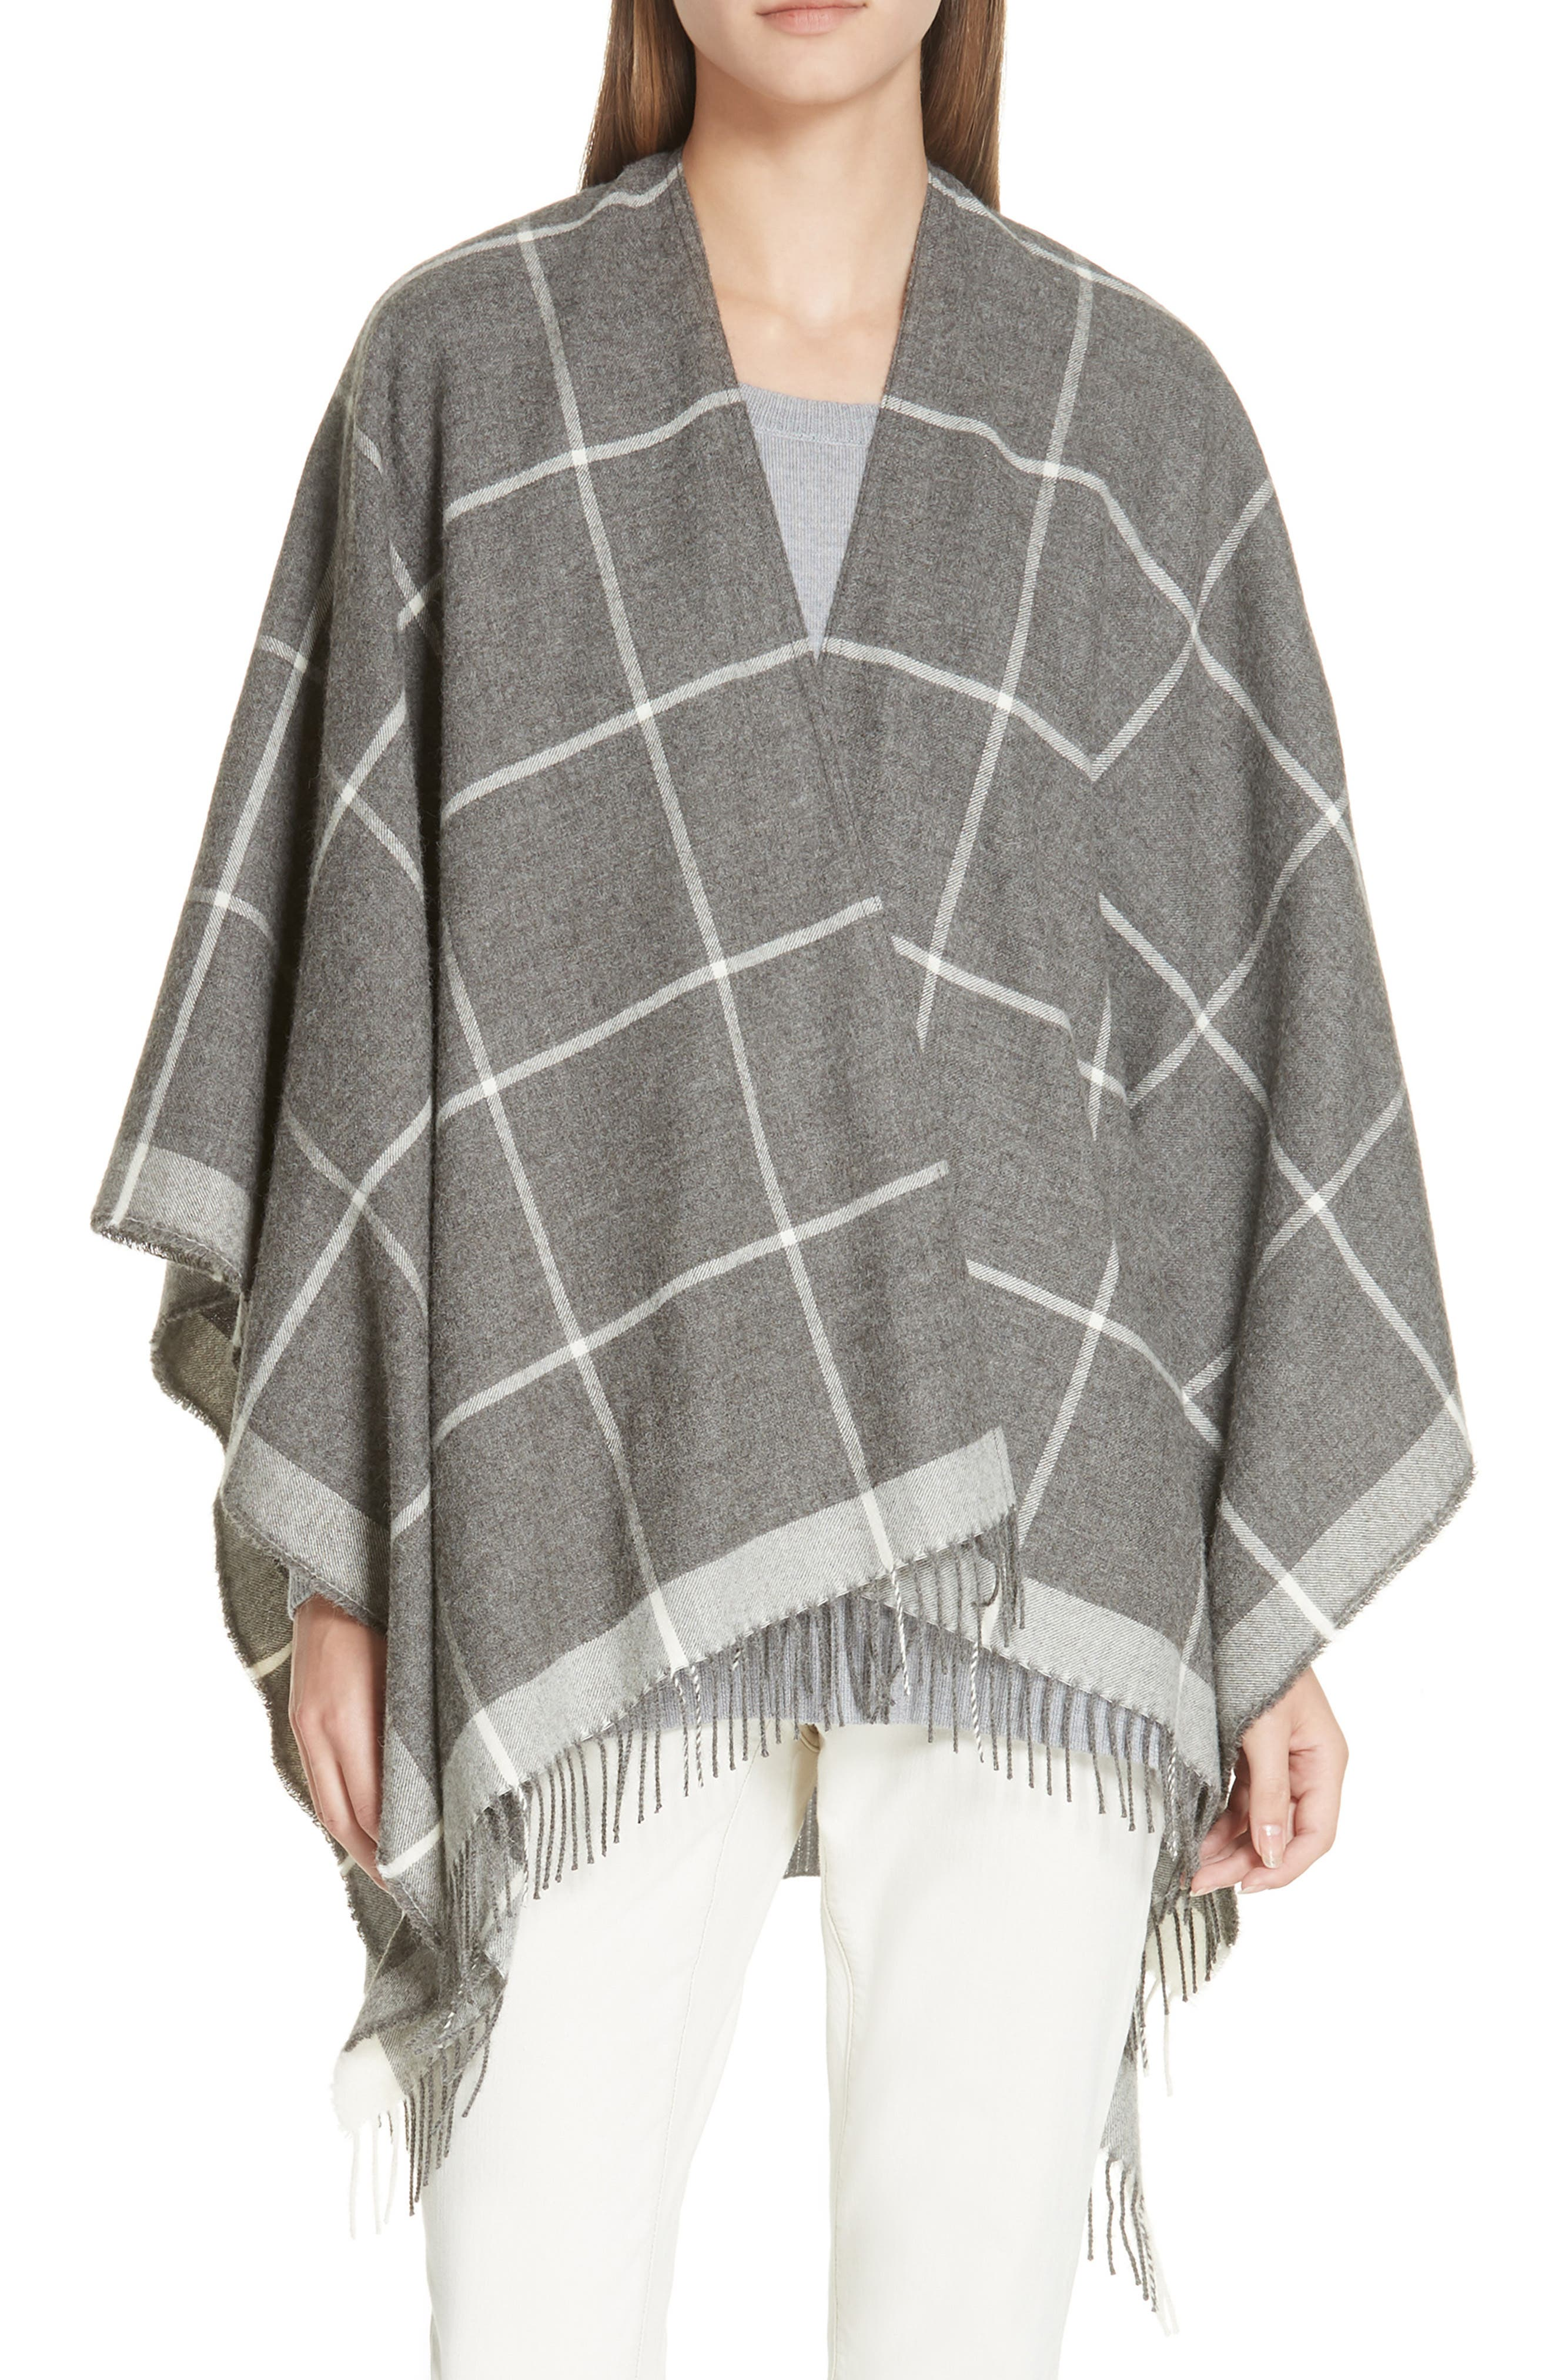 2b8235598f41 Women s Capes   Ponchos Sweaters